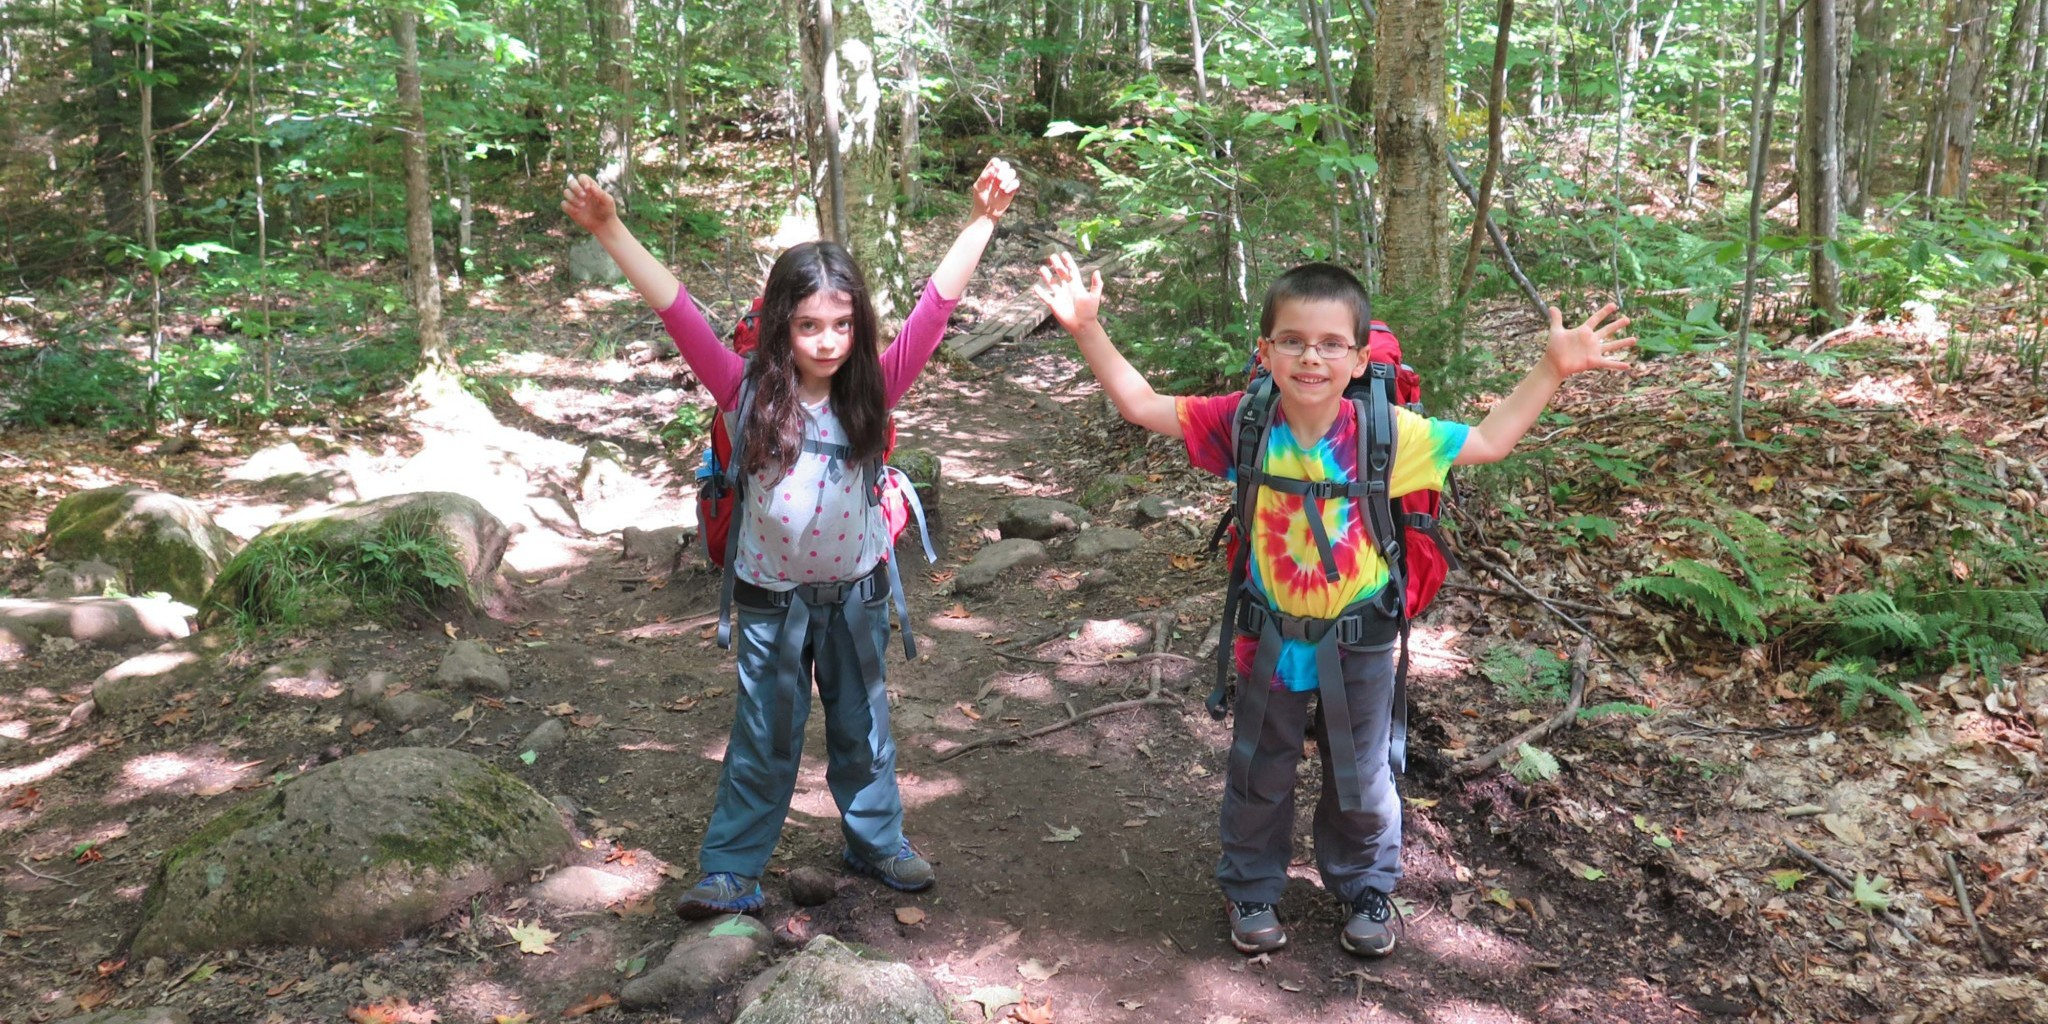 Two kids excited to be on the trail hiking.